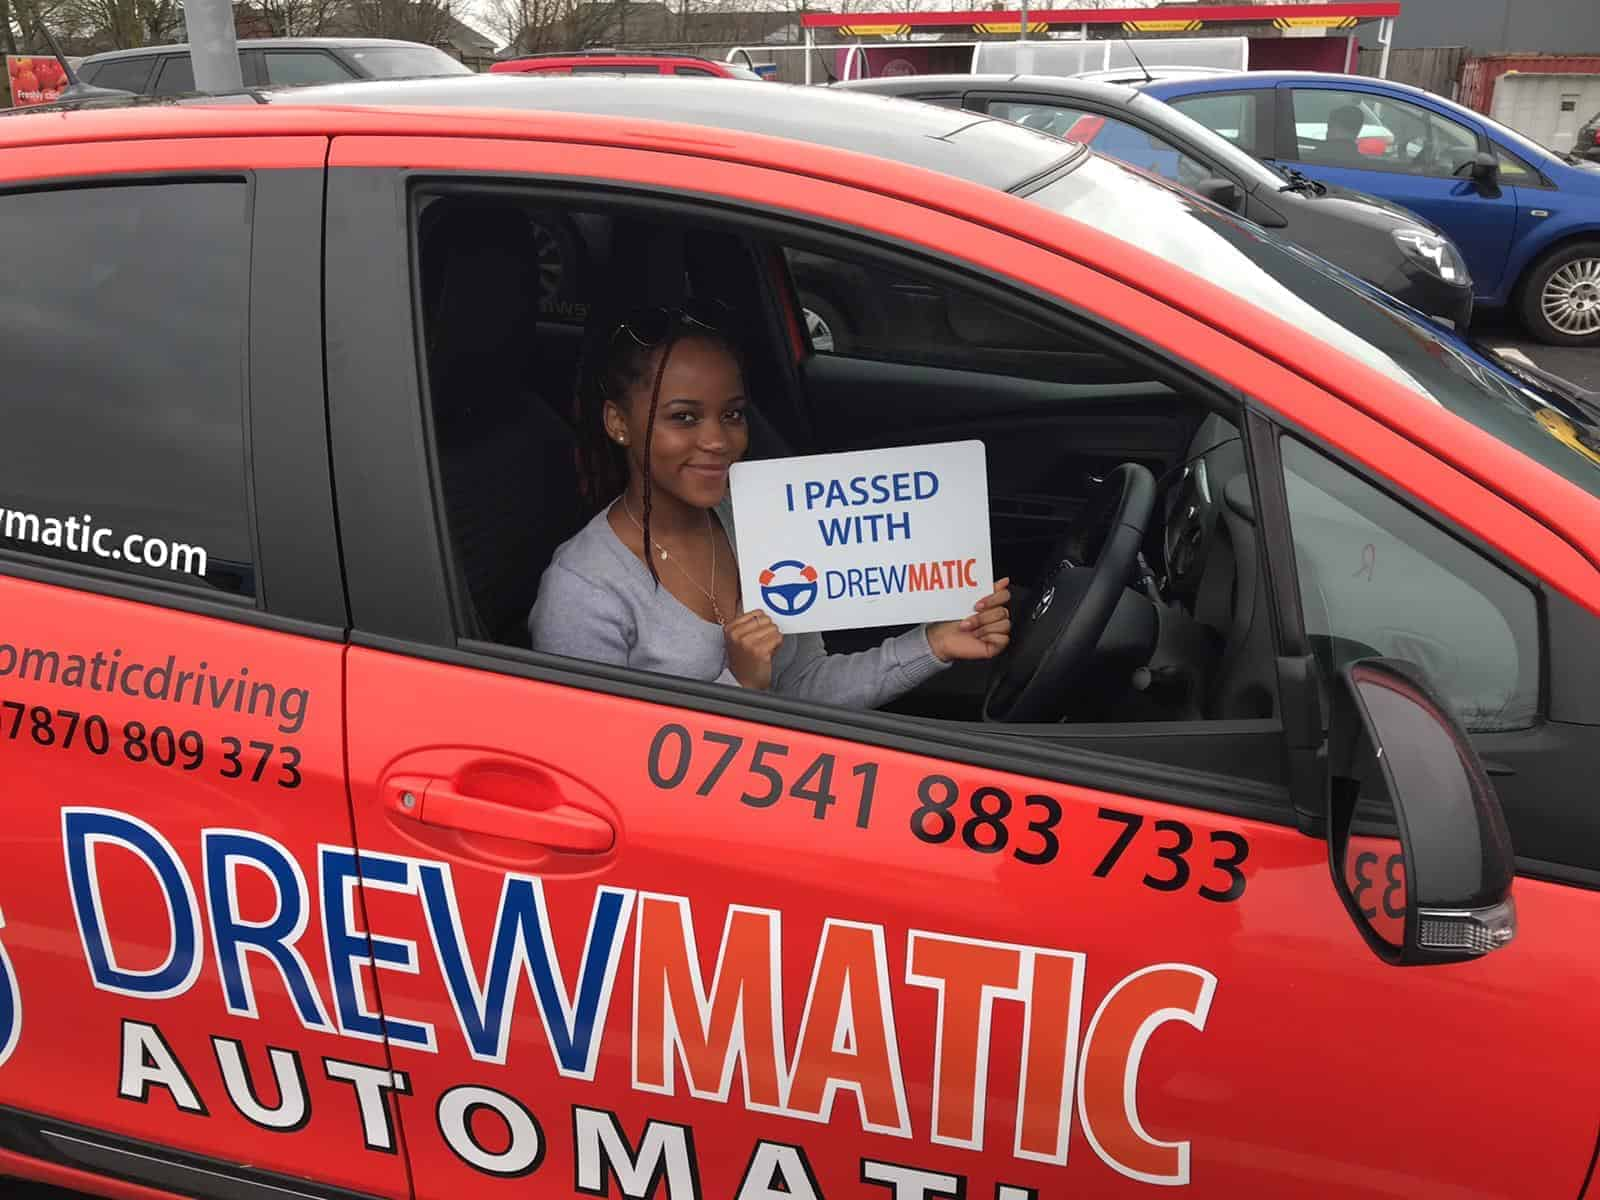 Automatic Driving Lessons DrewMatic Driving School